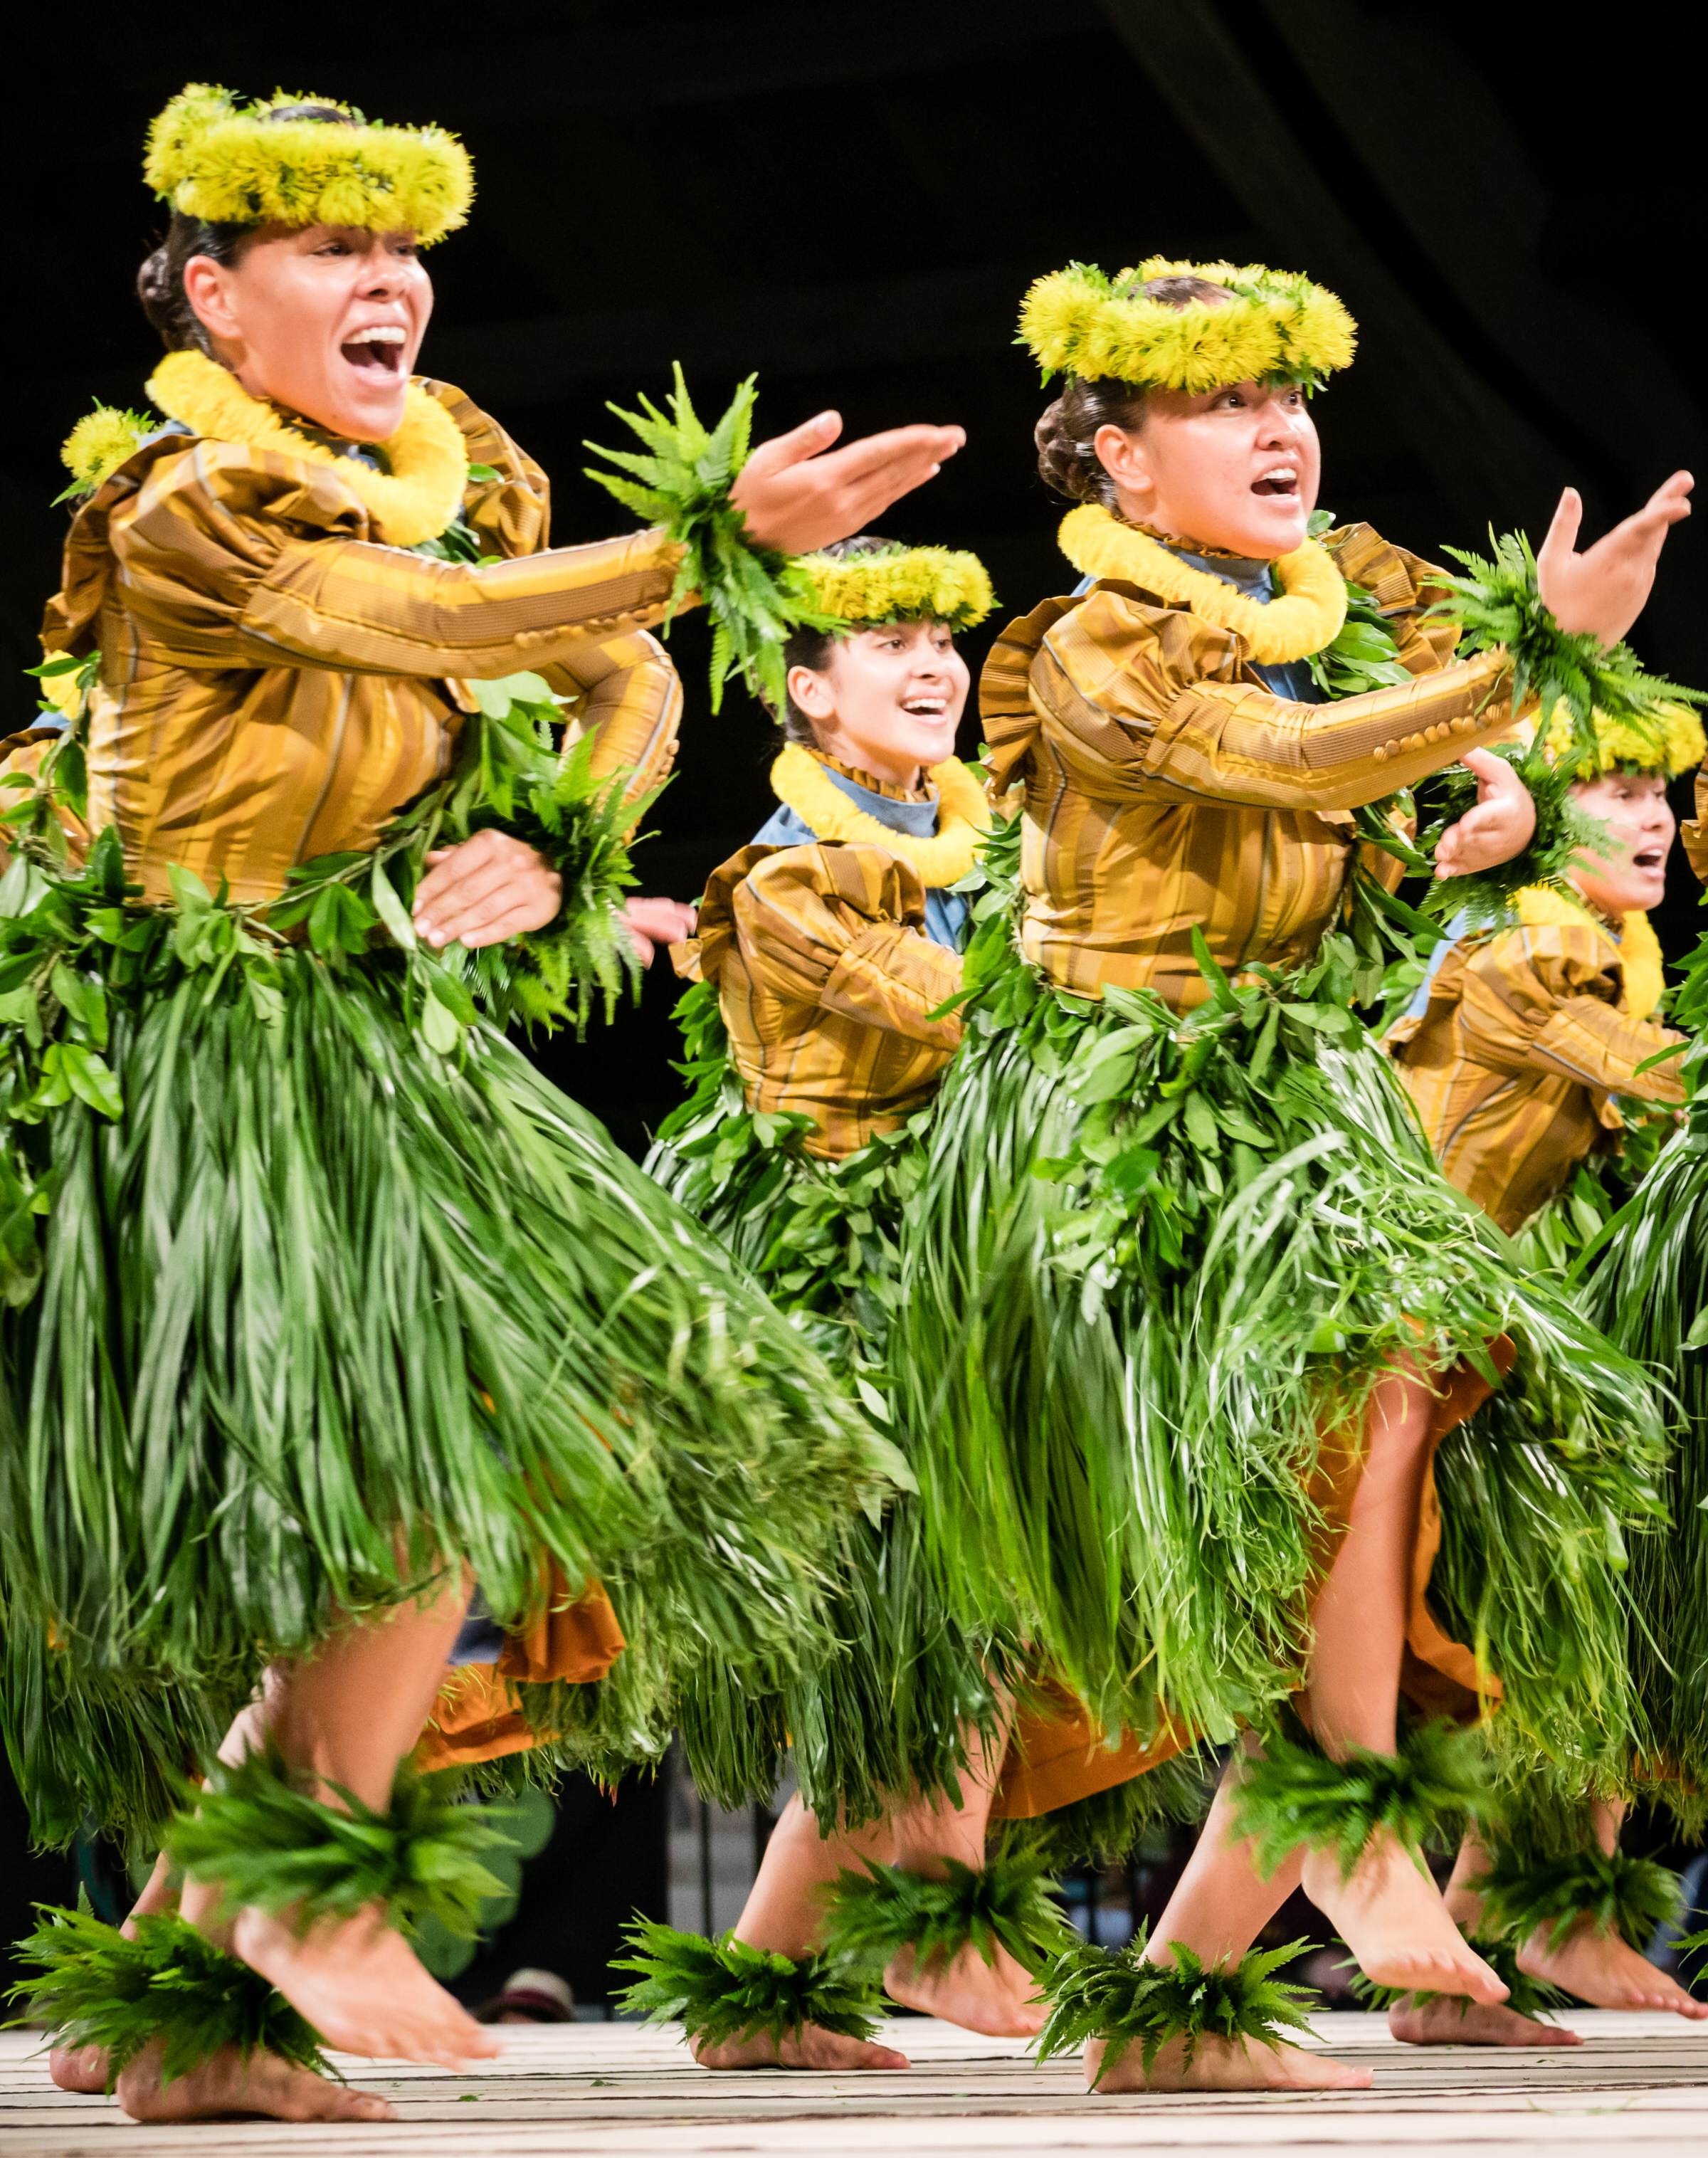 Halau-Manaola-Merrie-Monarch-Hula-Festival-EMotion-Galleries-Ranae-Keane-Photography-Destination-Wedding-Big-Island-Hawaii_010_180406_.jpg